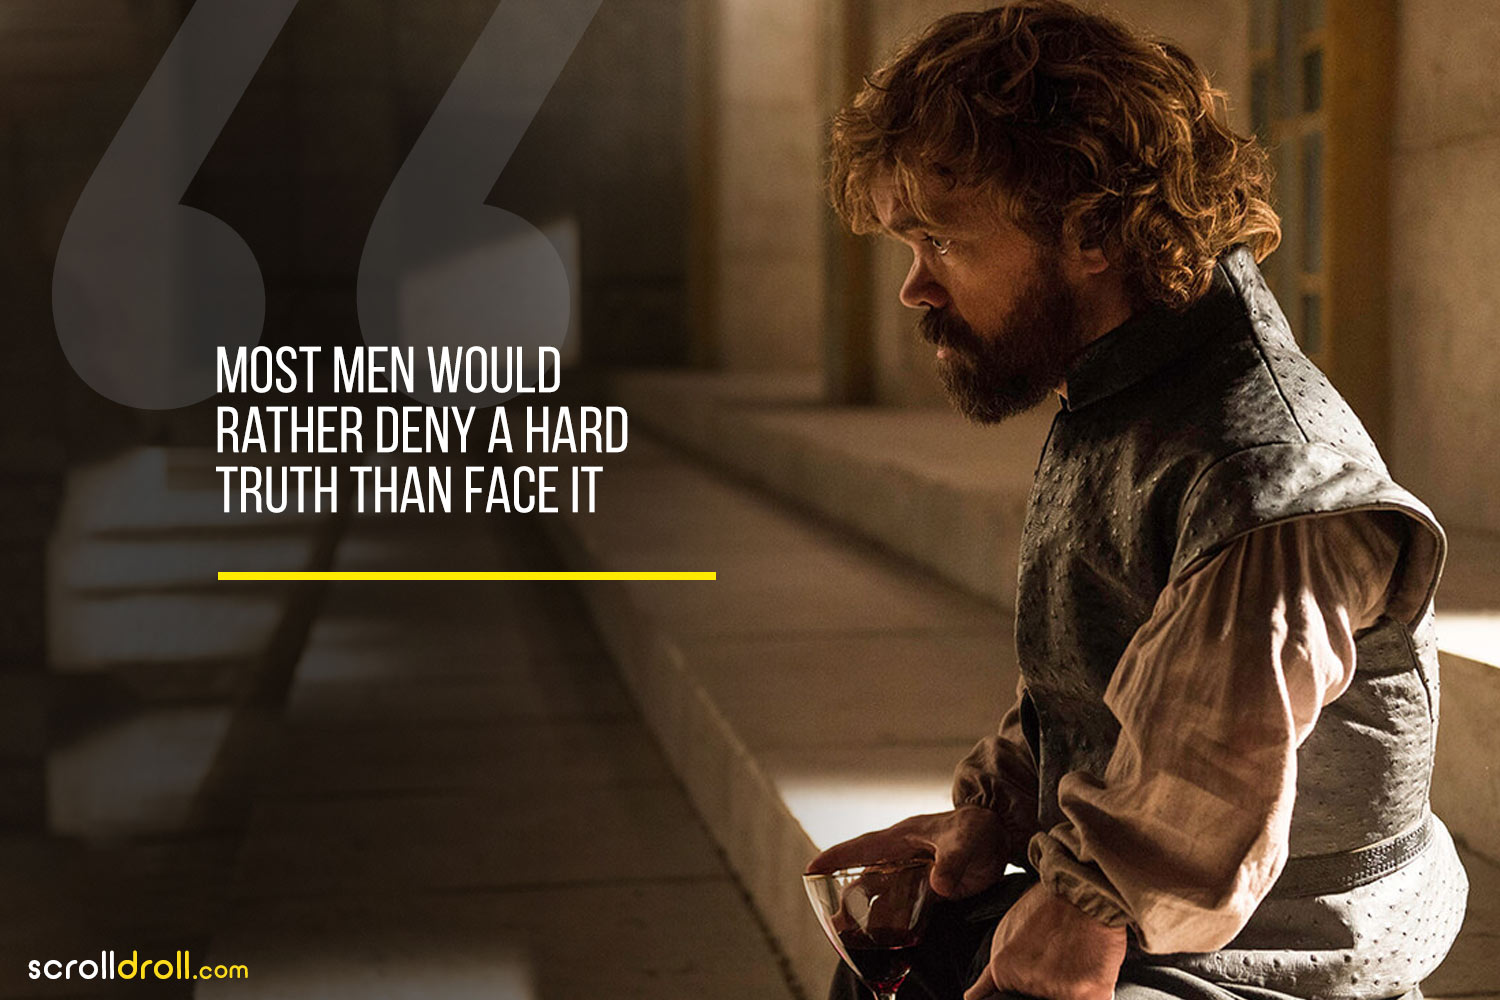 Tyrion-Most men would rather deny a hard truth than face it